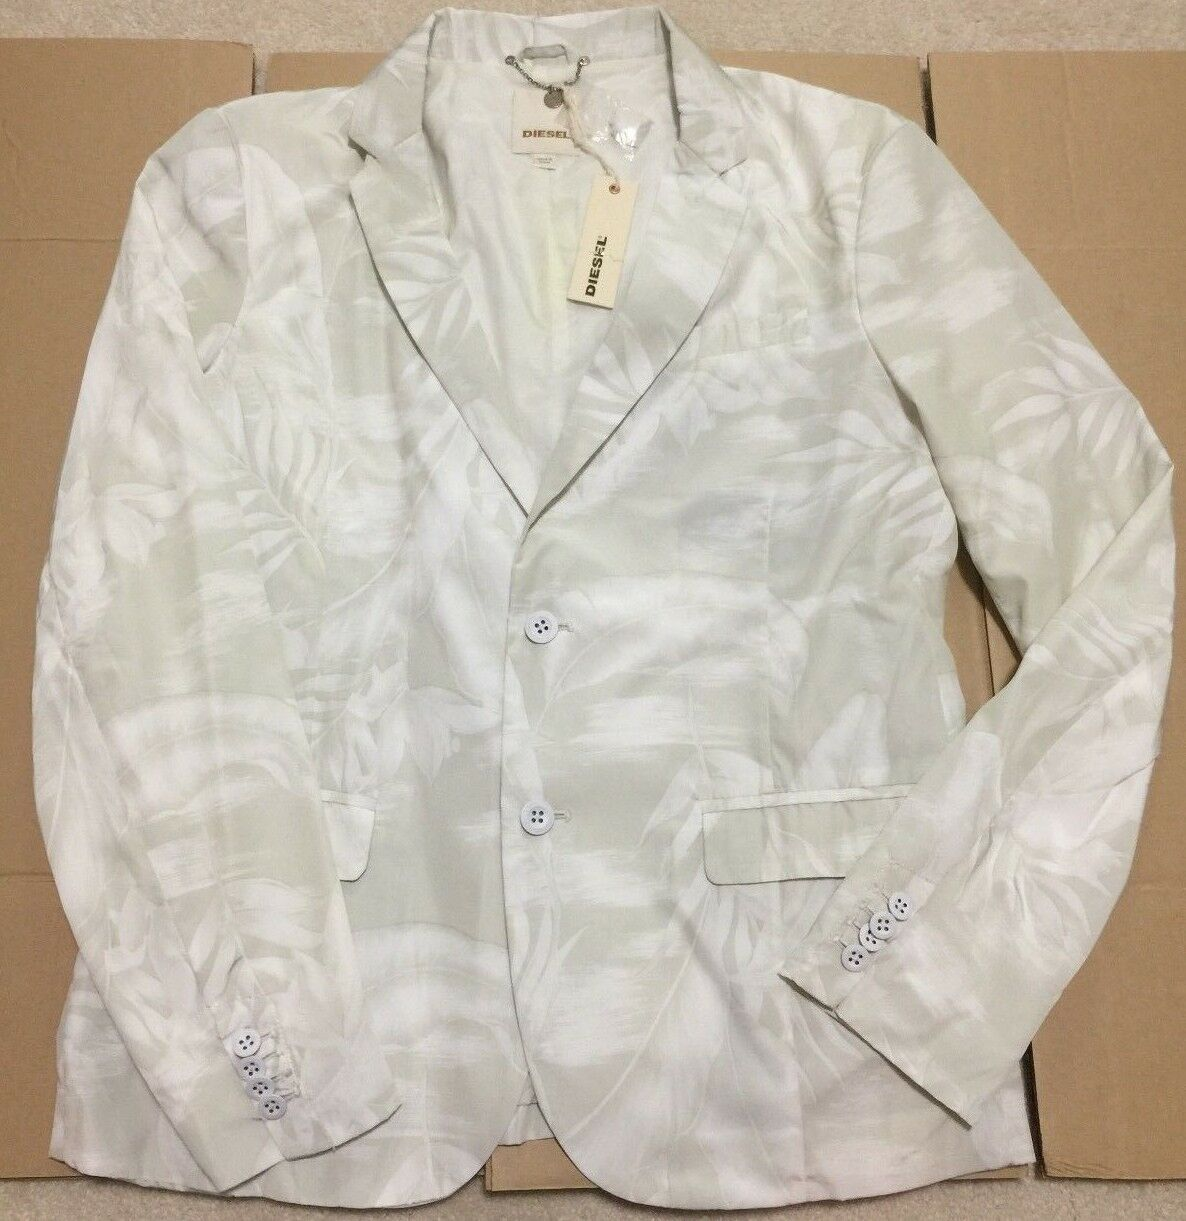 DIESEL SHINY PEARL WHITE WITH FLORAL DESIGN MEN'S BLAZER SIZE XL NEW WITH TAGS